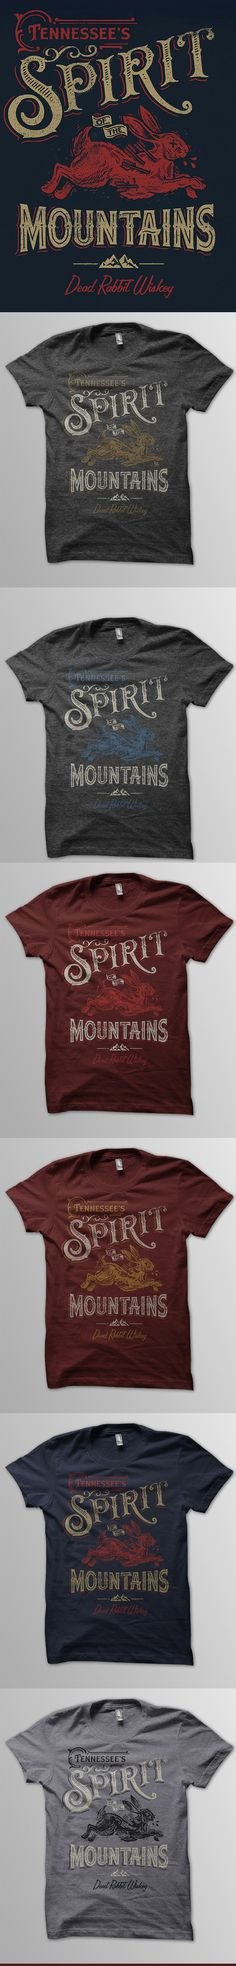 Spirit mountains tee mocks list